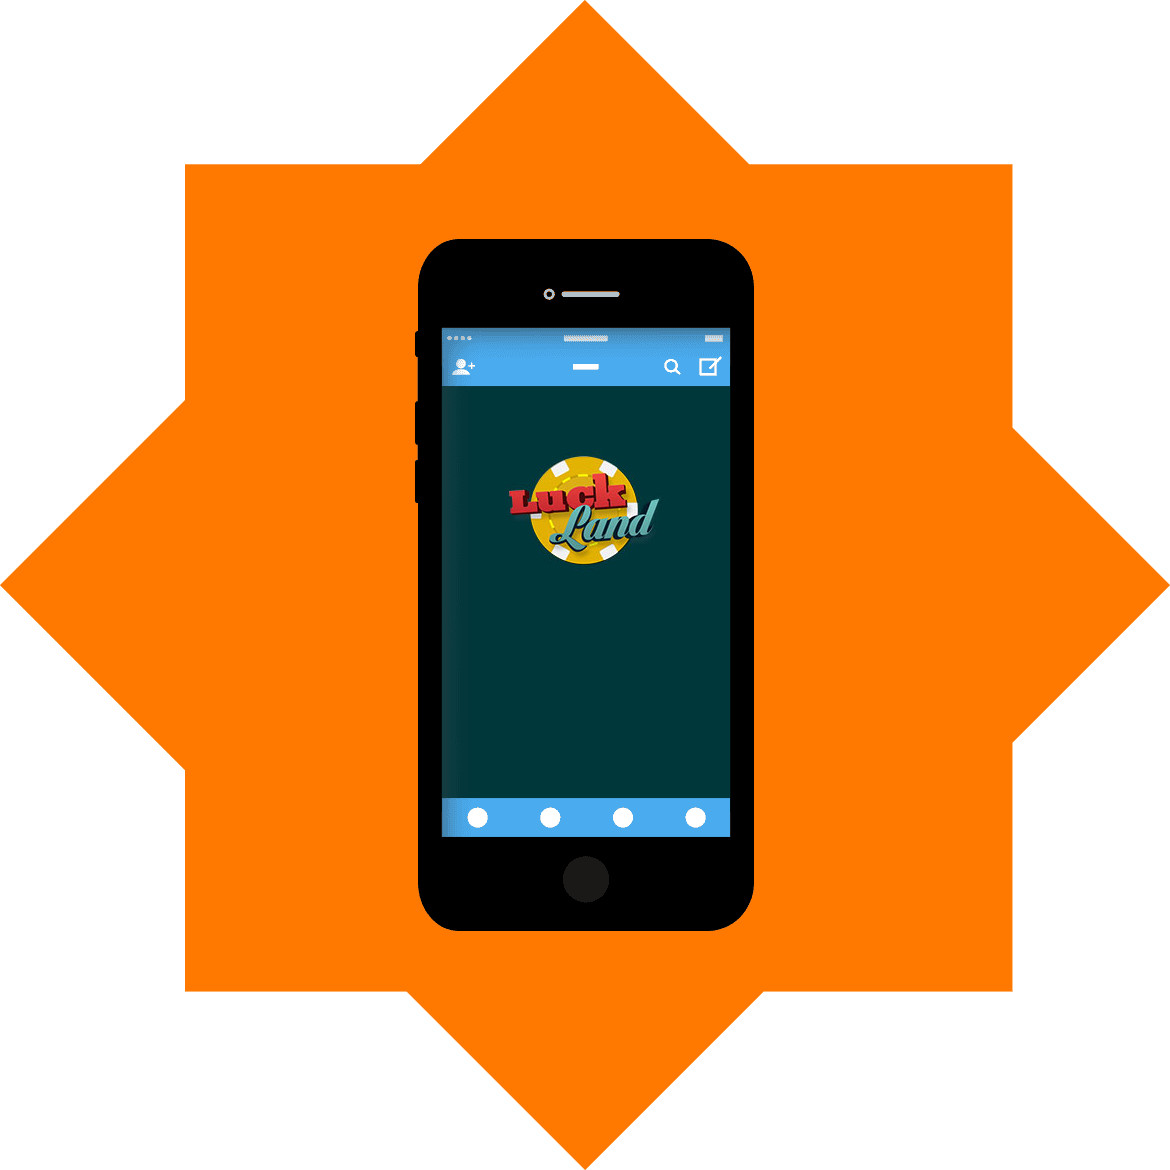 LuckLand - Mobile friendly